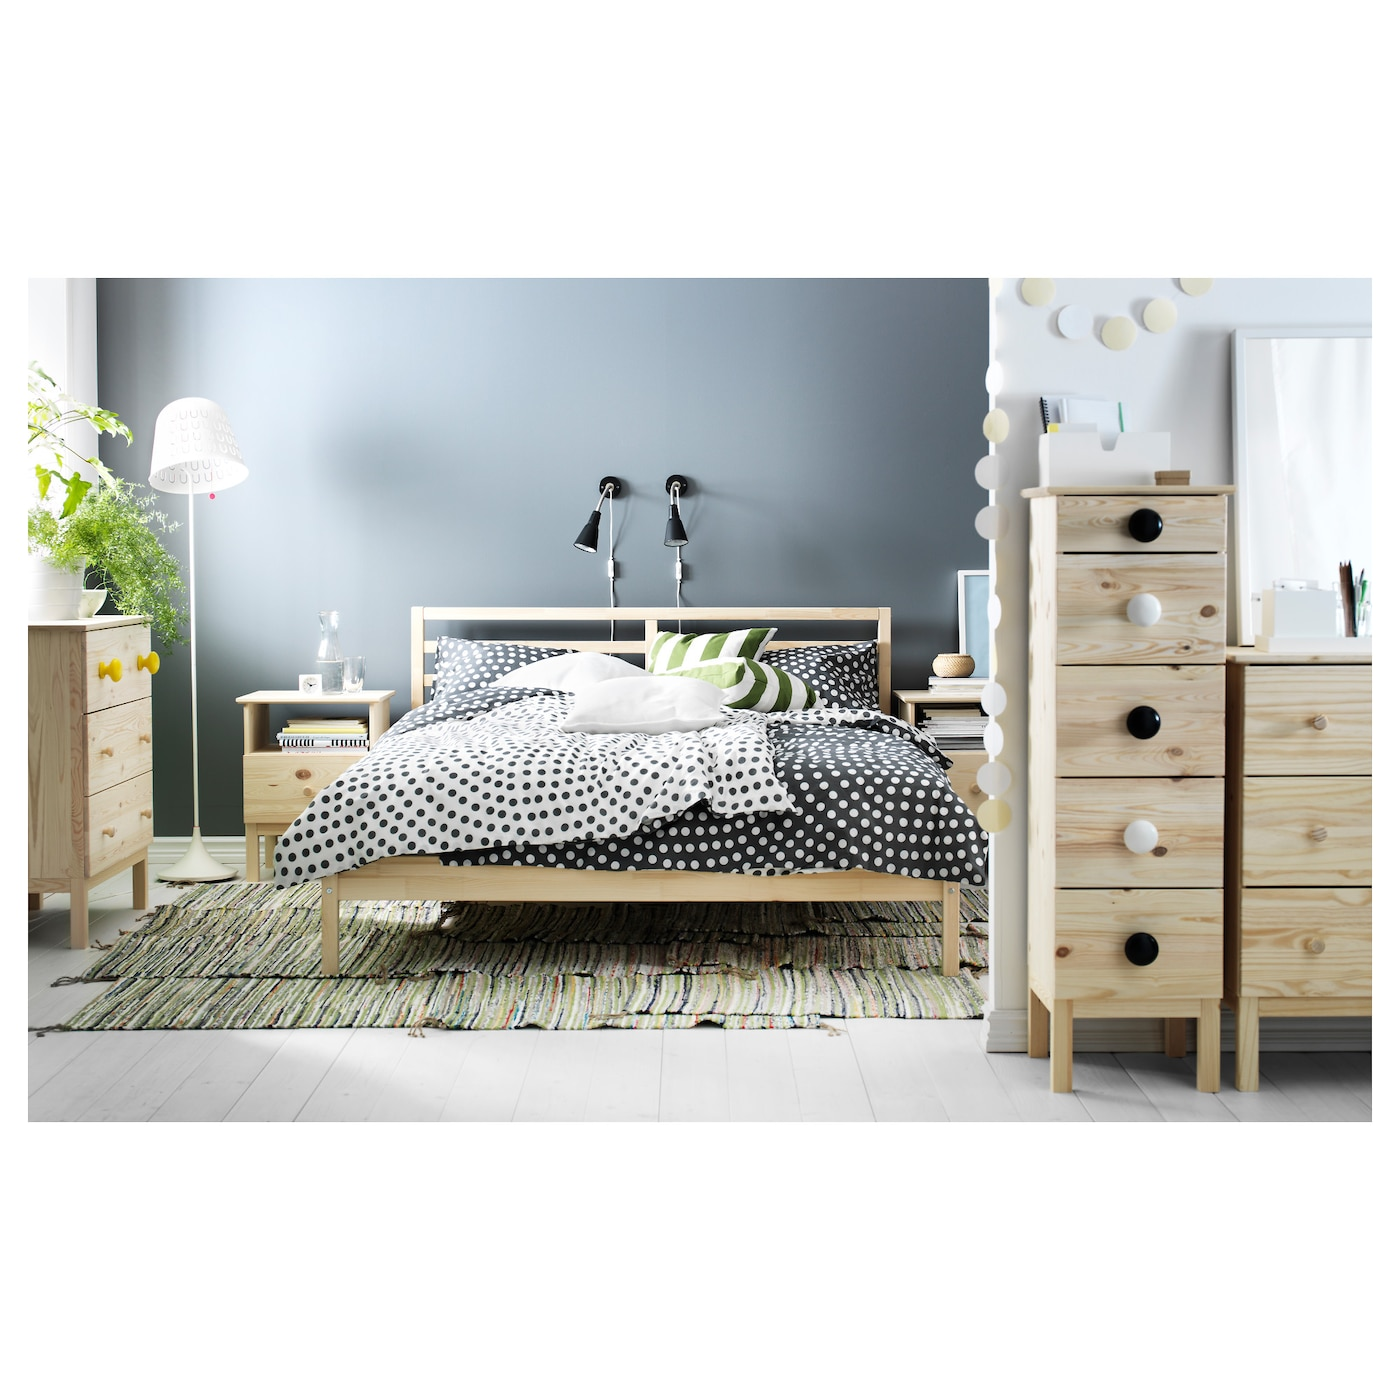 tarva cadre de lit pin 160 x 200 cm ikea. Black Bedroom Furniture Sets. Home Design Ideas